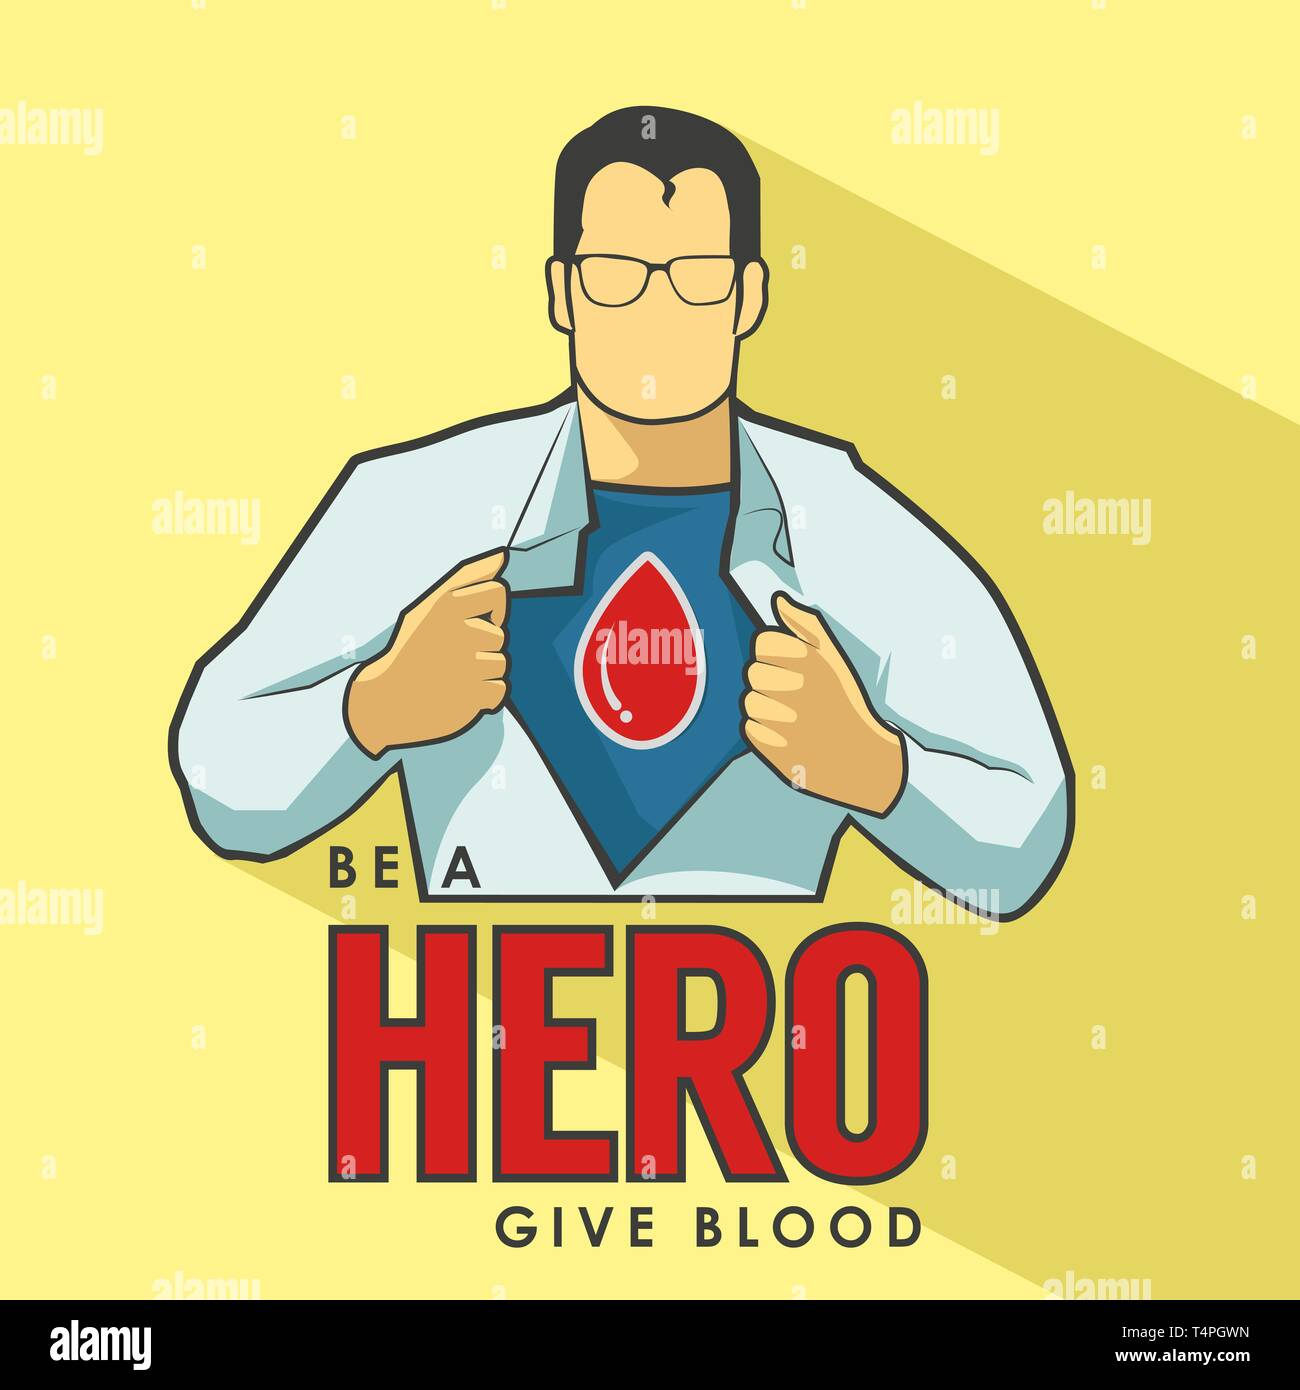 Super Hero Blood Donation Poster - Stock Image